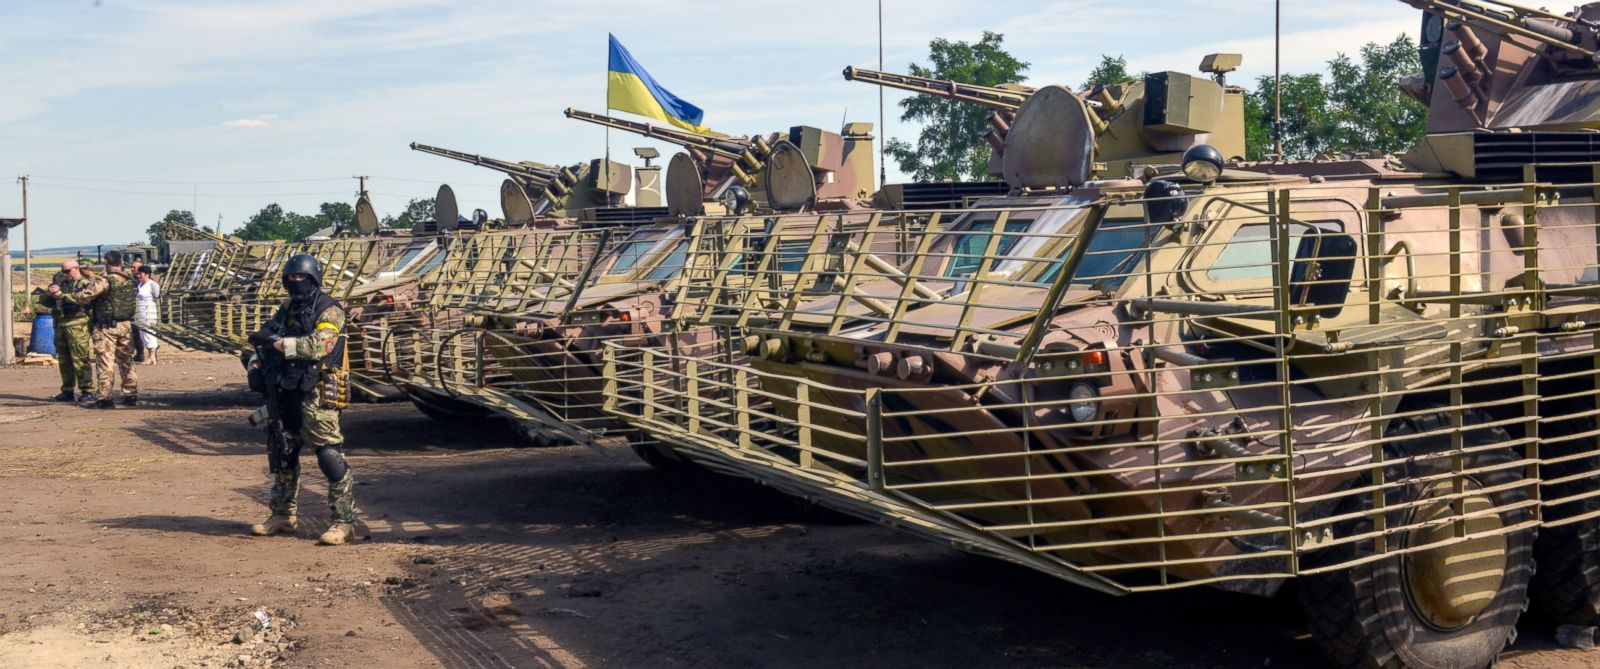 PHOTO: Servicemen guard a parking of APCs (armoured personnel carriers) in headquarters of Ukrainian forces near Izyum, in the Kharkiv region of Ukraine, July 16, 2014.